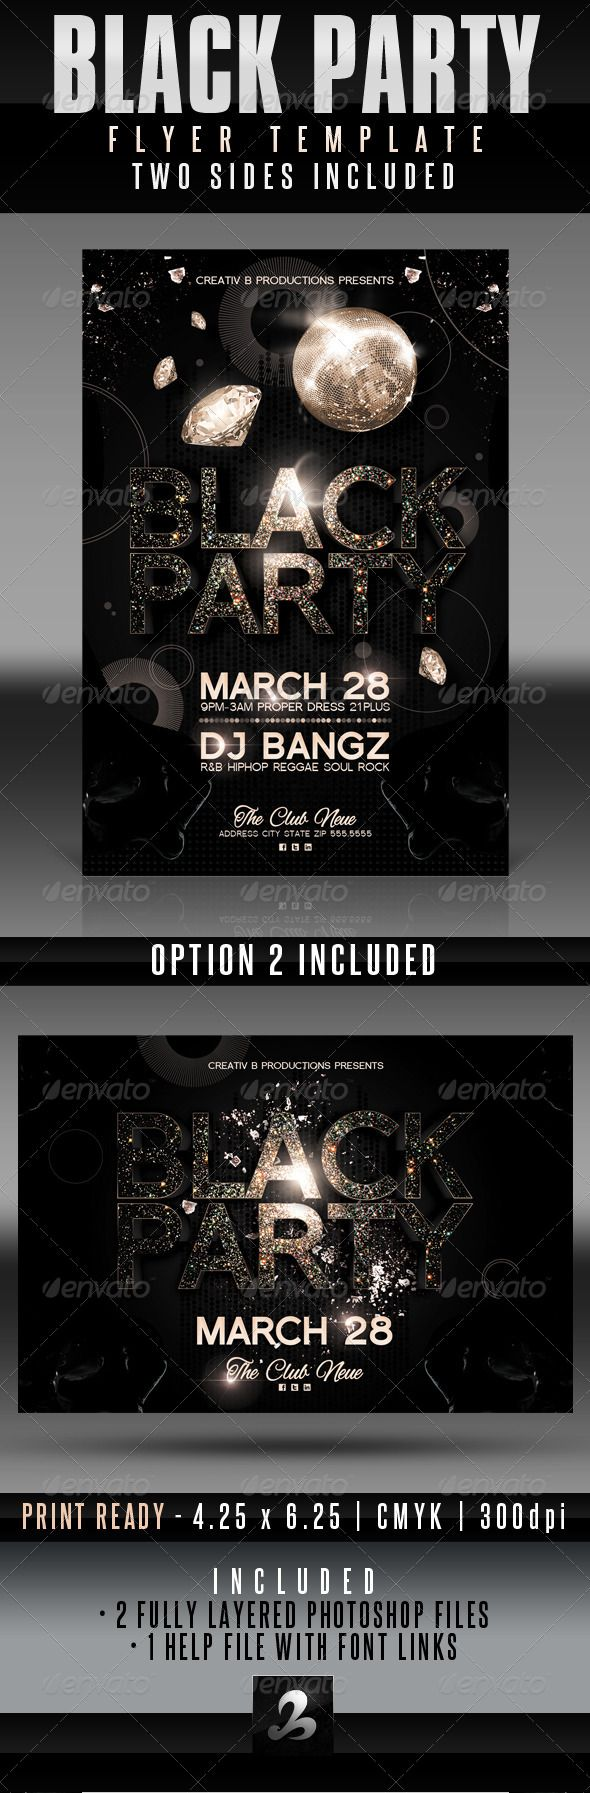 black party flyer templates graphicriver use this flyer and or